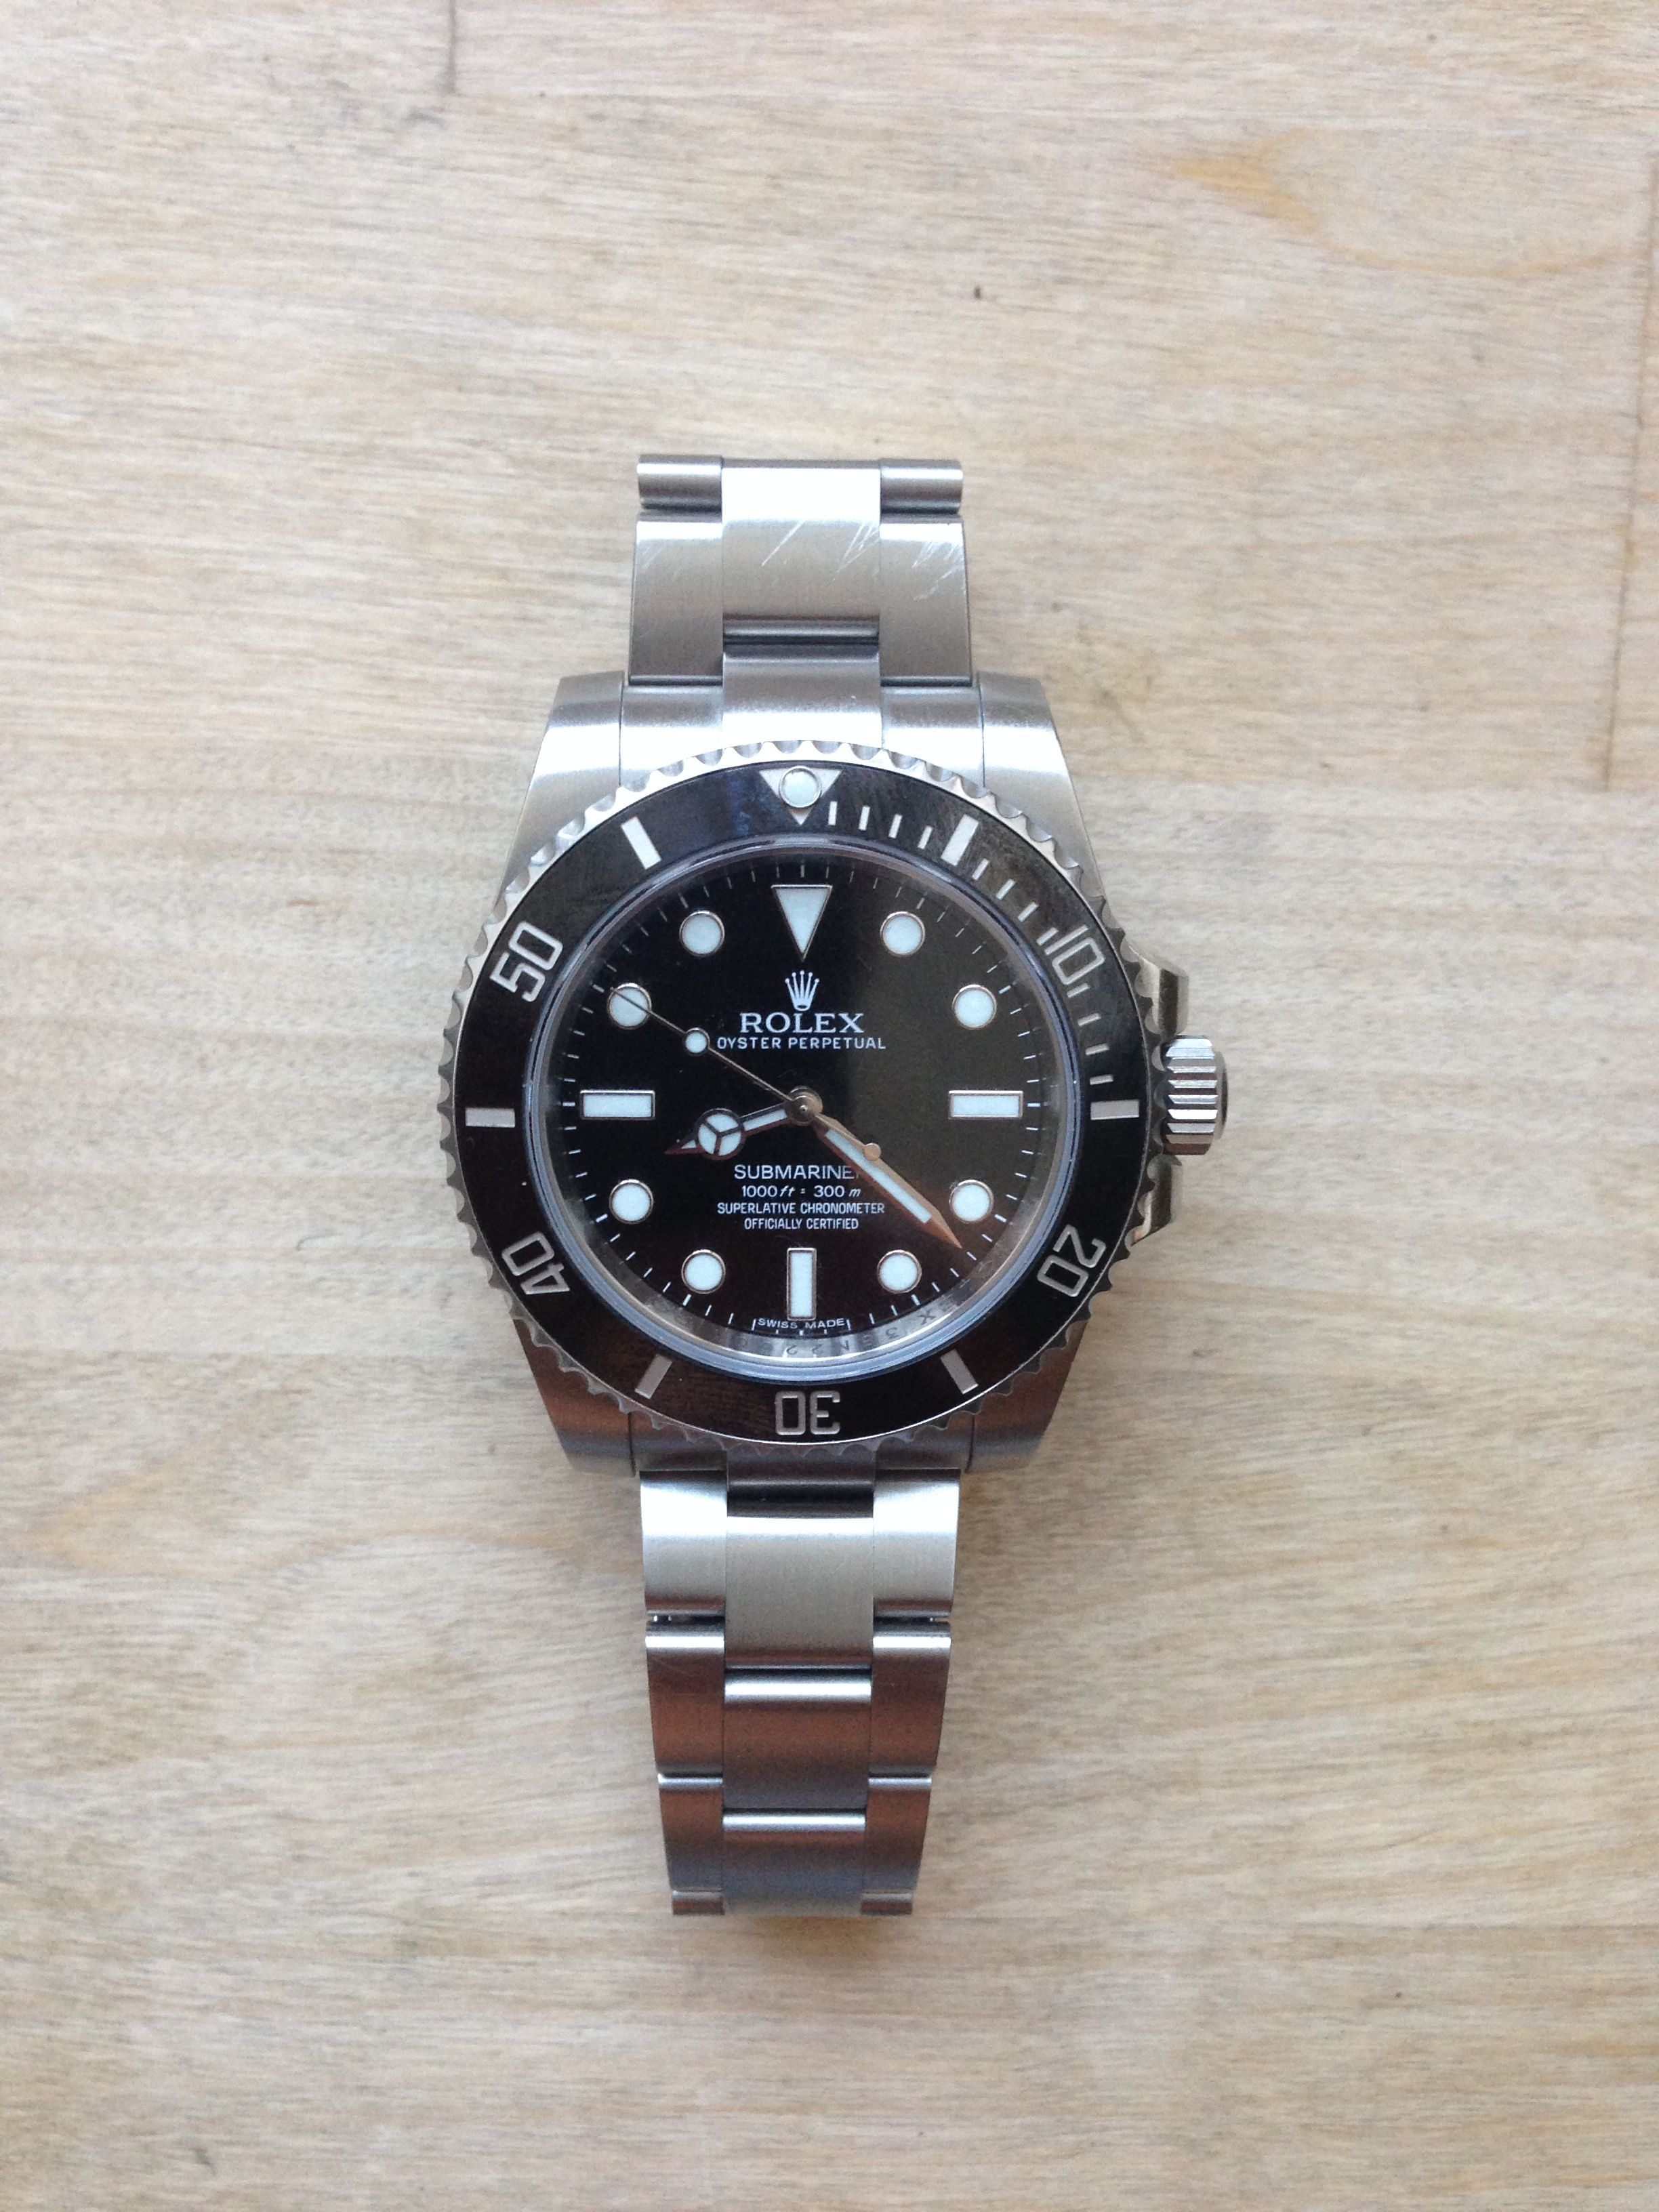 93144c4ab10 Rolex Submariner no date w. ceramic bezel  rolex  submariner ...